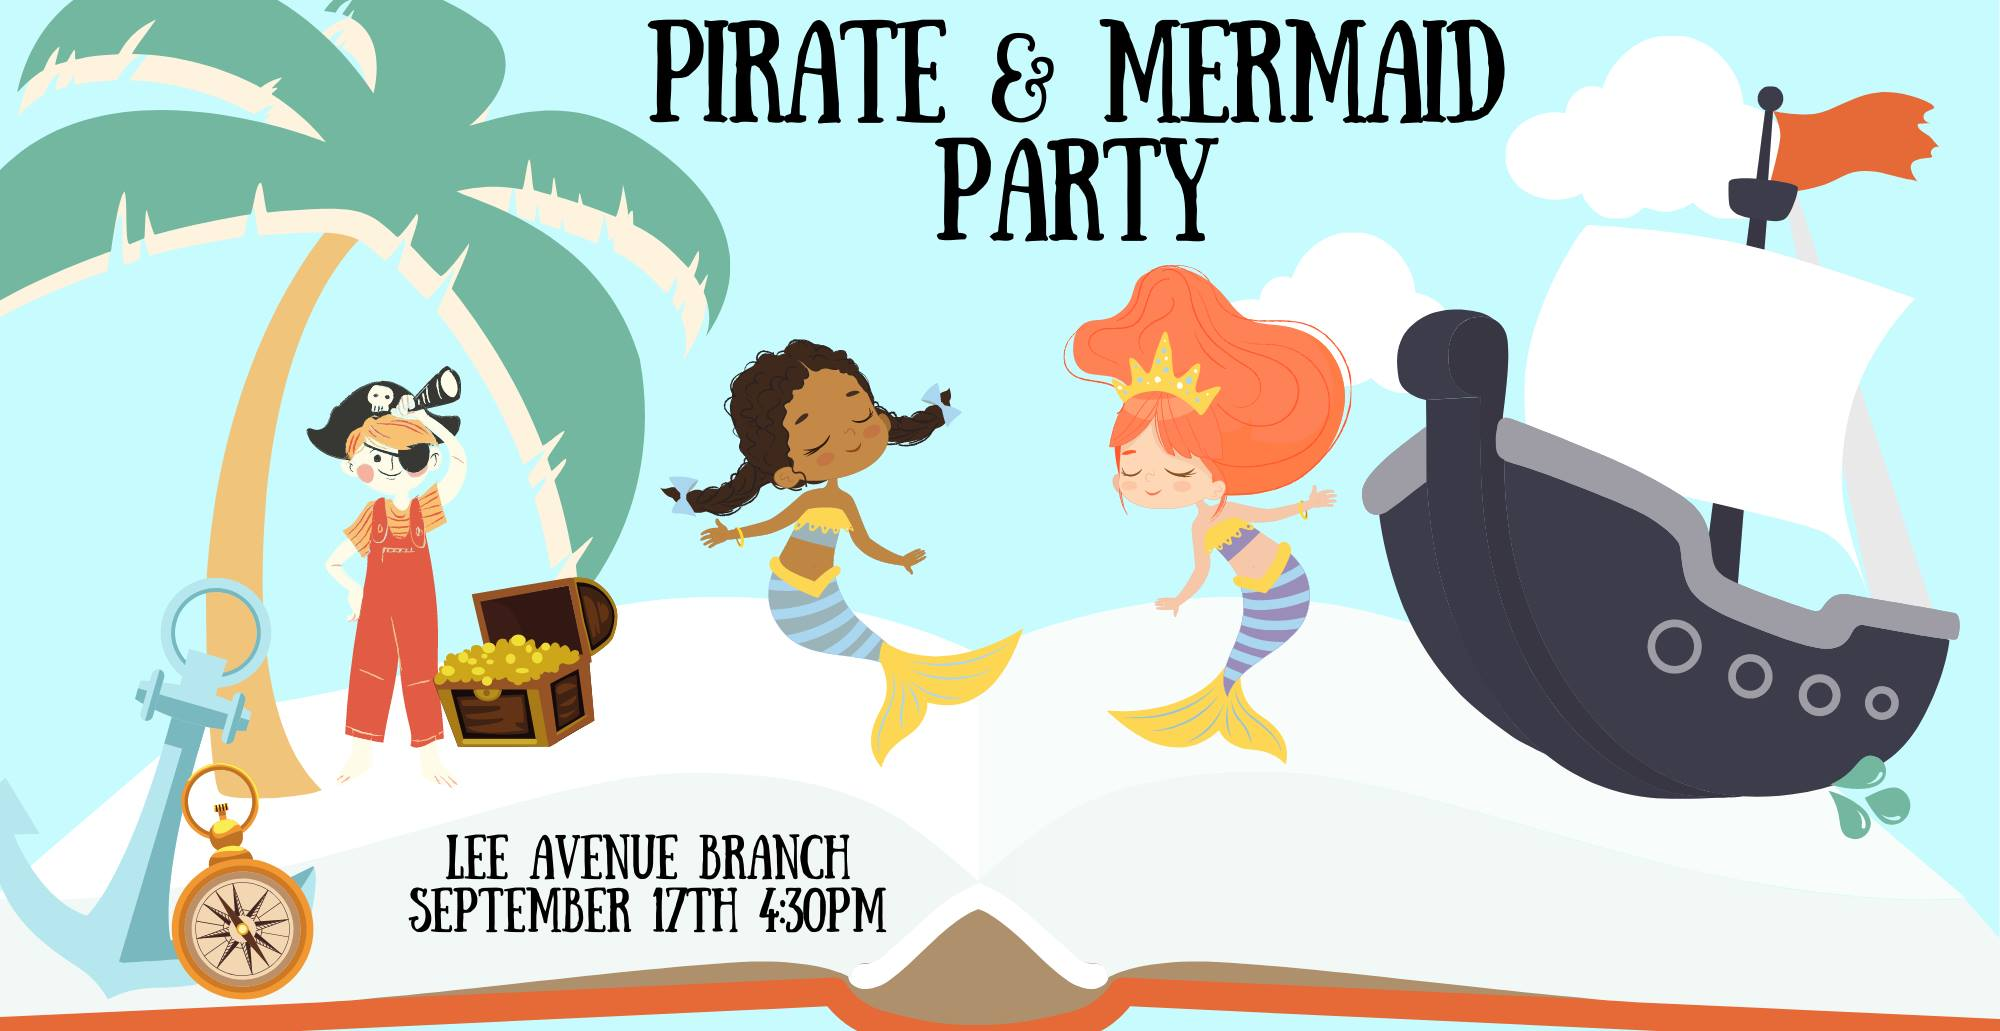 Pirate and Mermaid Party